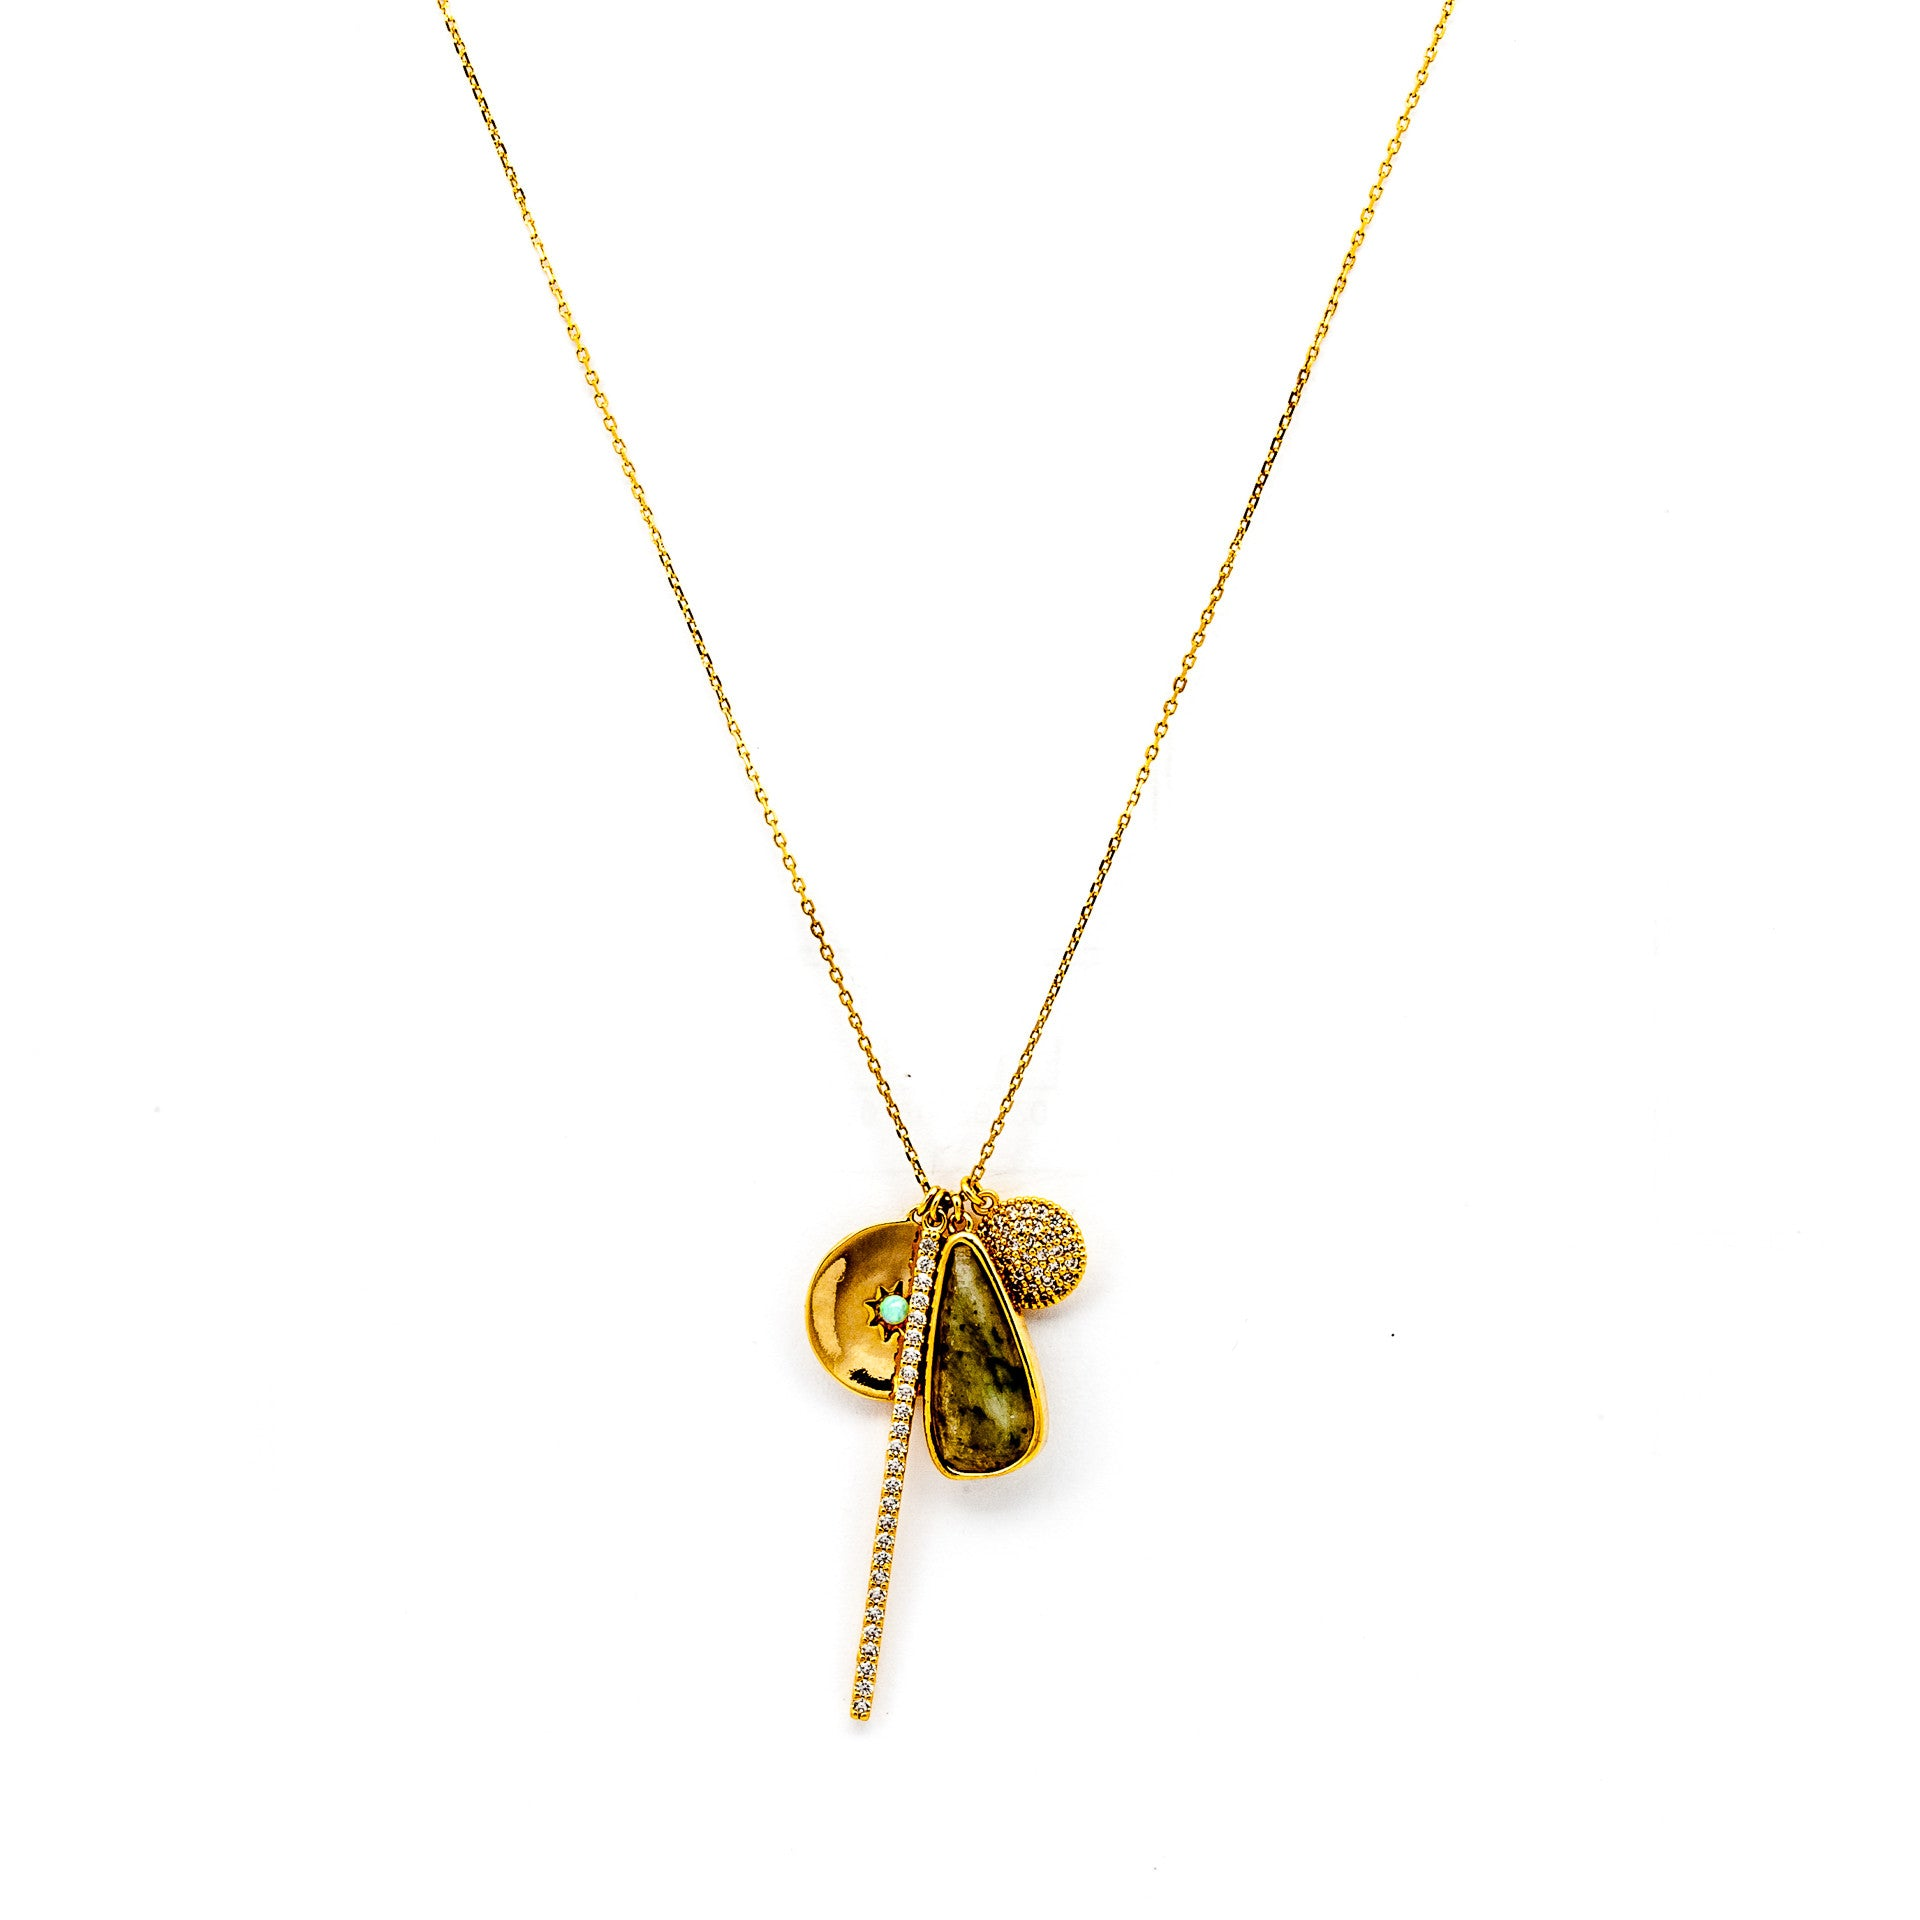 Tai Jewelry Gold Chain Necklace With Labradorite Gold KxcOH